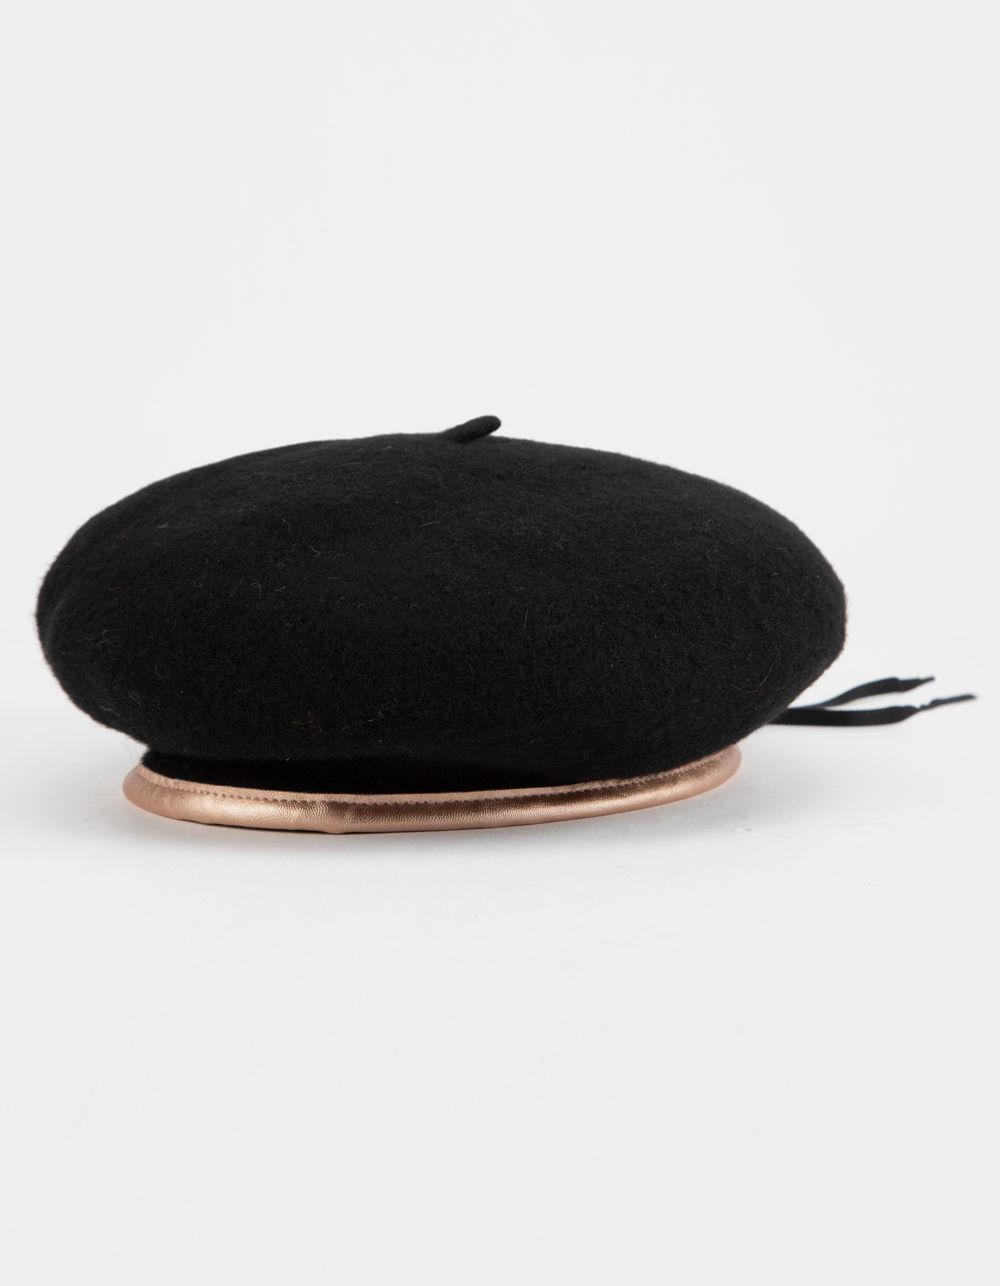 81f7a6673a5cd Lyst - Brixton Lennon Beret (blush) Caps in Black - Save ...